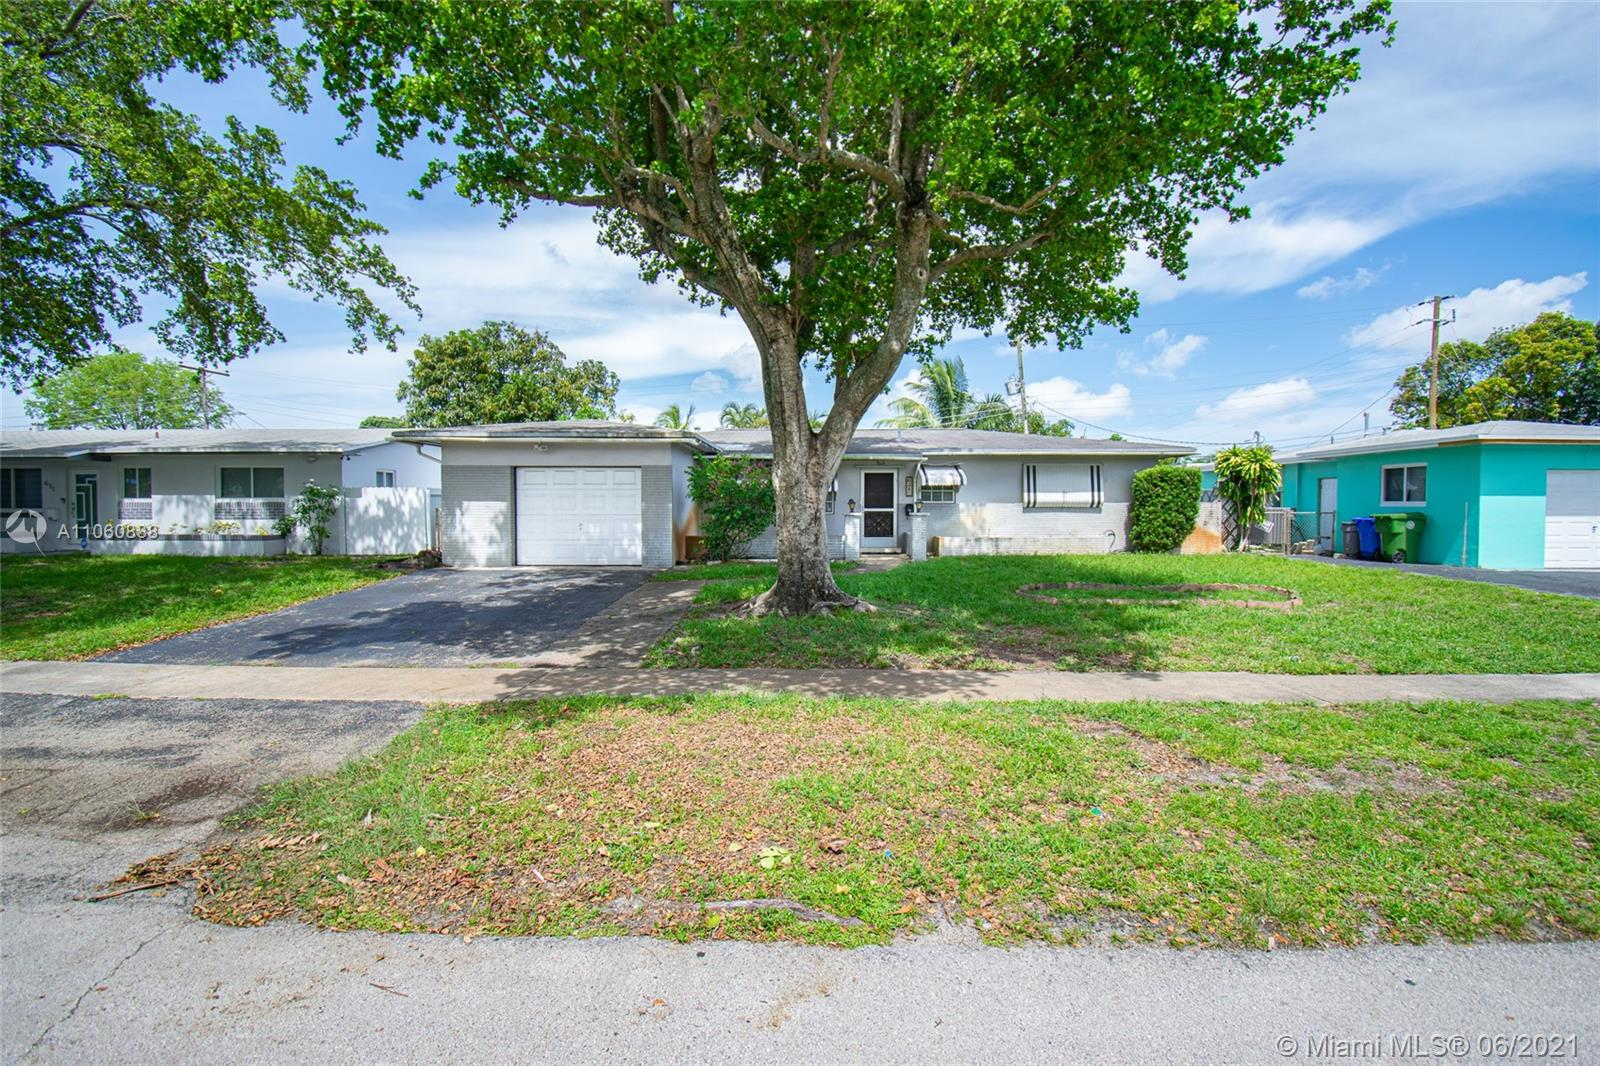 621 NW 78th Ave, Pembroke Pines, Florida 33024